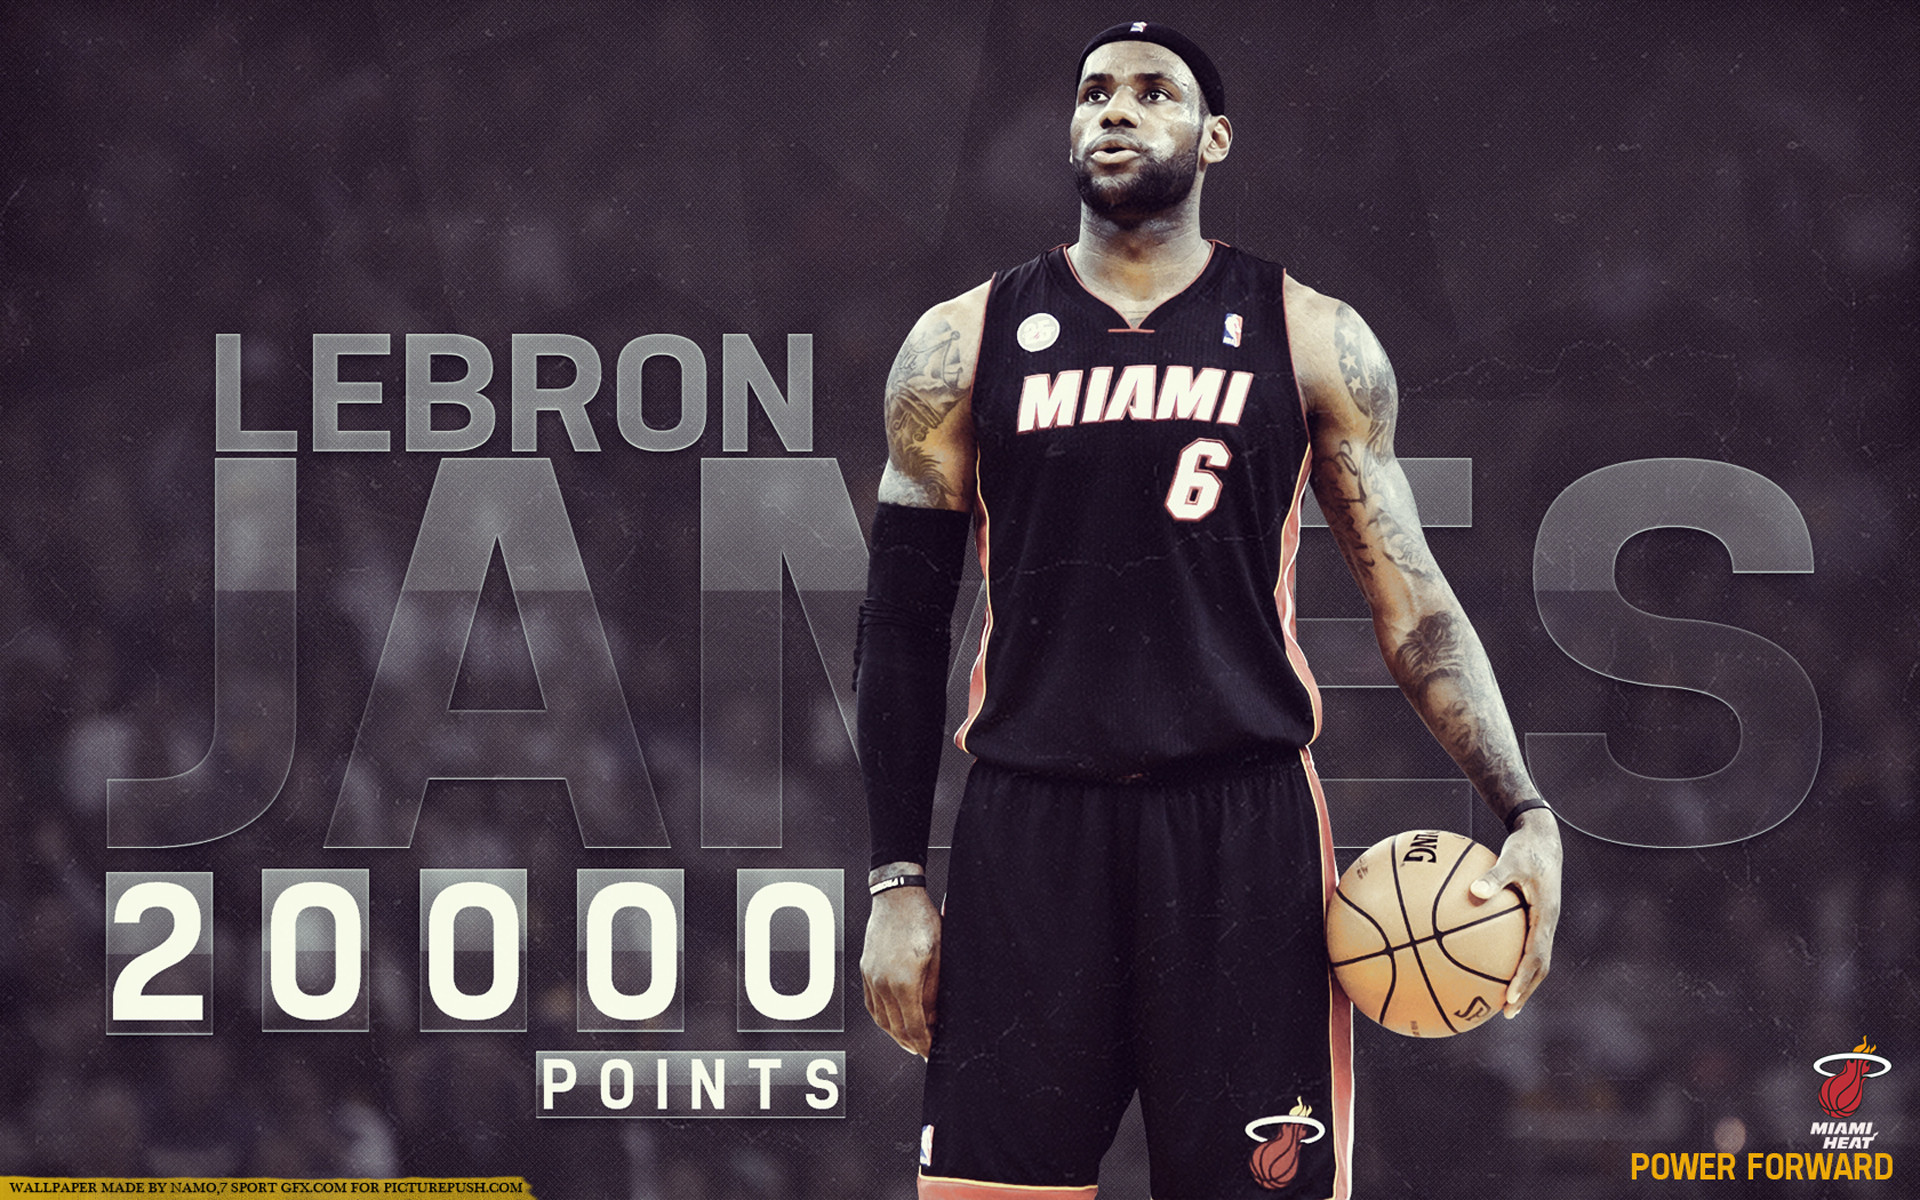 1920x1200 lebron james power forward miami heat hd wallpaper hd background wallpapers  free cool tablet smart phone 4k high definition 1920×1200 Wallpaper HD